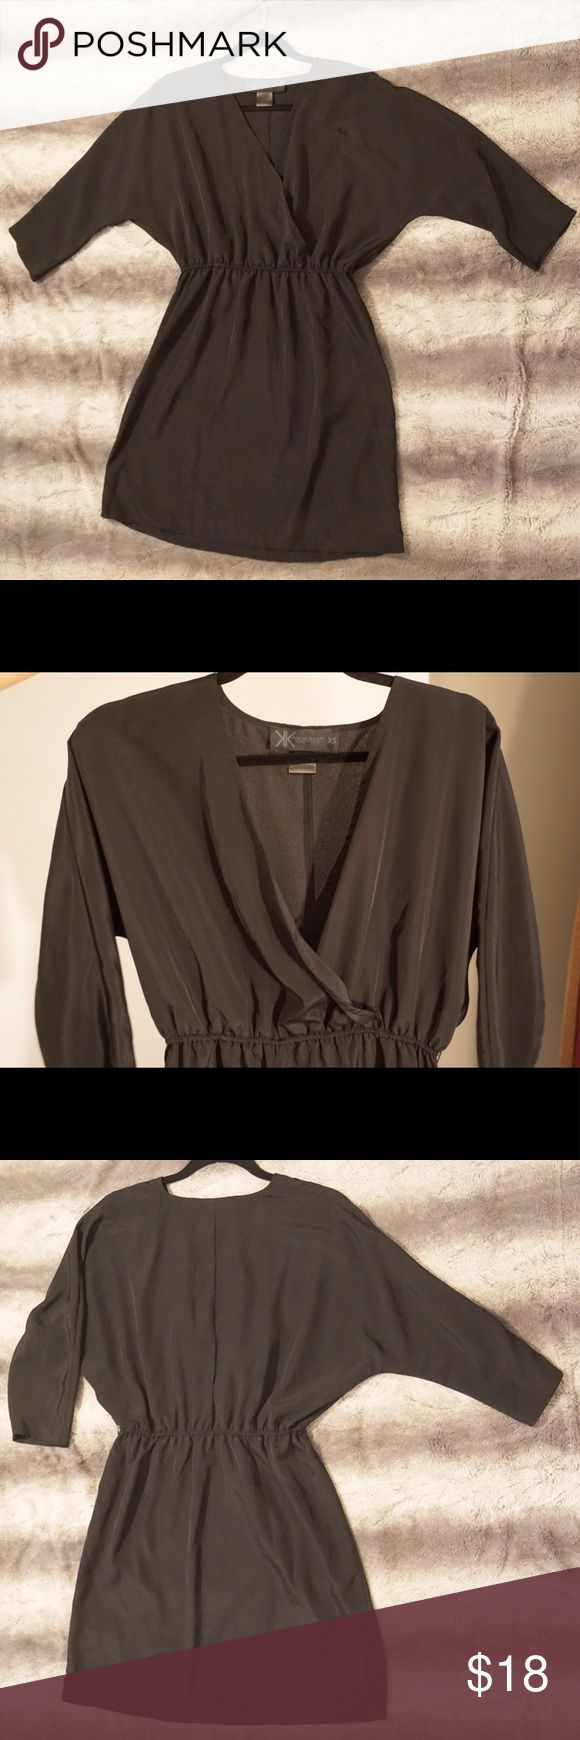 Kardashian Kollection Black Dress Really good condition black dress that is perfect for accessorizing!  Loose fit styled top portion with elastic waistline and about 3/4 sleeves.  Feel free to ask for any measurements if interested! Kardashian Kollection Dresses Midi